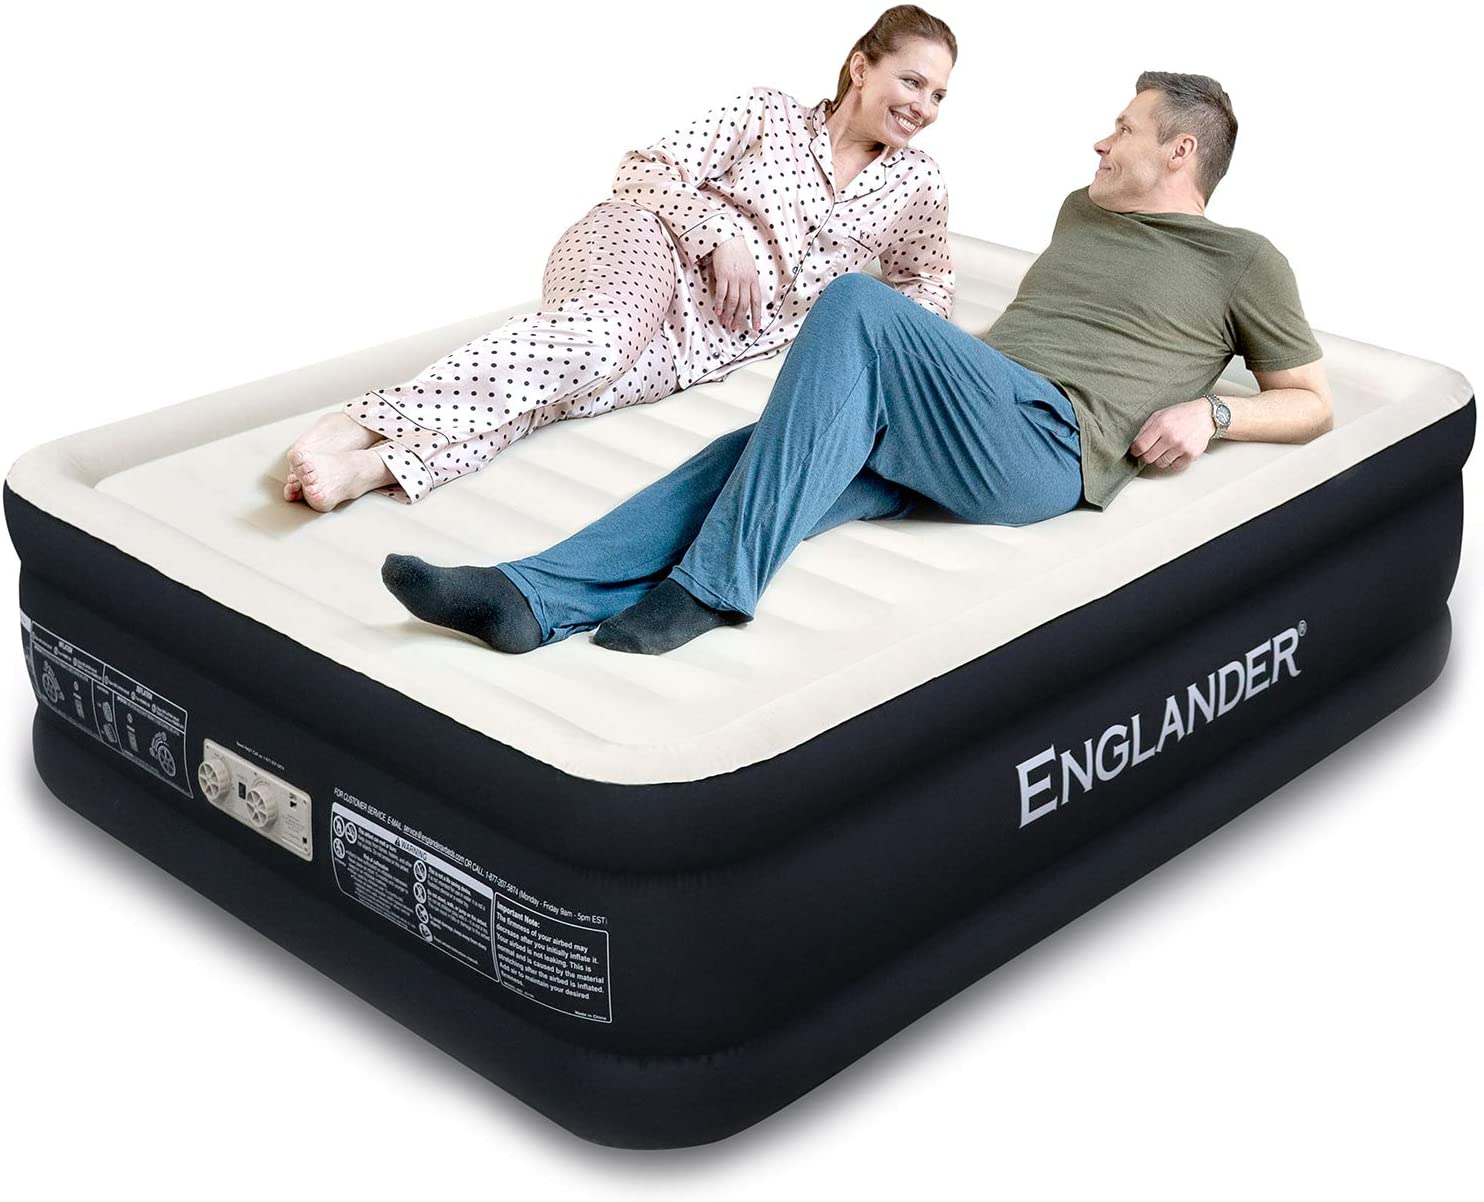 Englander First Ever Microfiber Queen Air Mattress, Luxury Microfiber airbed with Built-in Pump, Highest End Blow Up Bed, Inflatable Air Mattresses for Guests Home Travel 5-Year Warranty (Black)